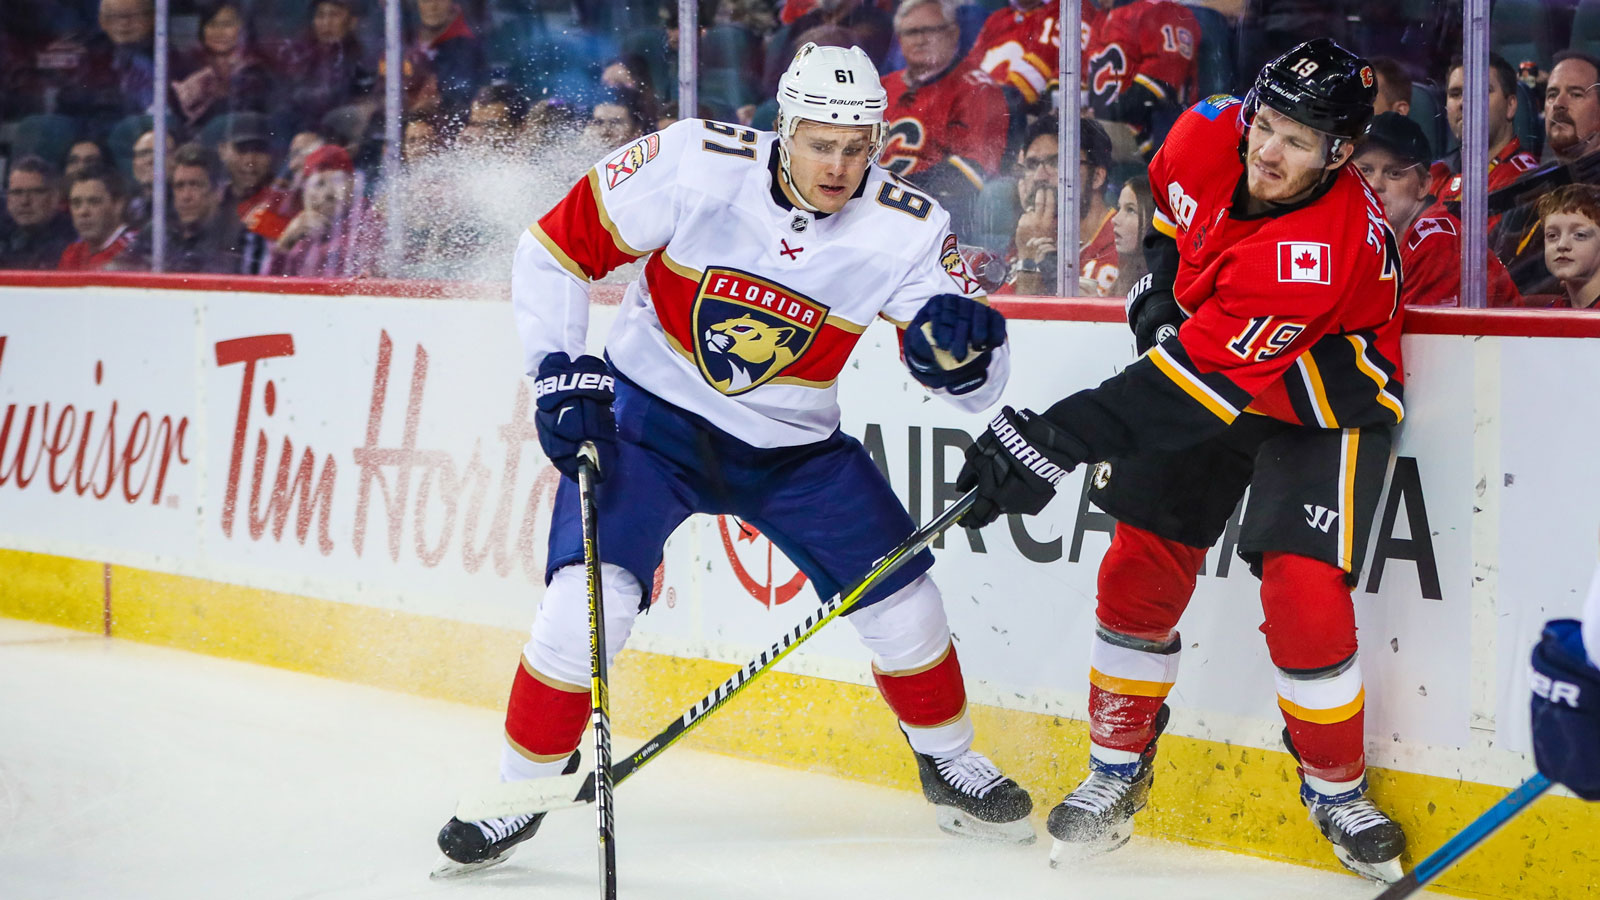 Panthers recall D Riley Stillman from AHL affiliate, Springfield Thunderbirds